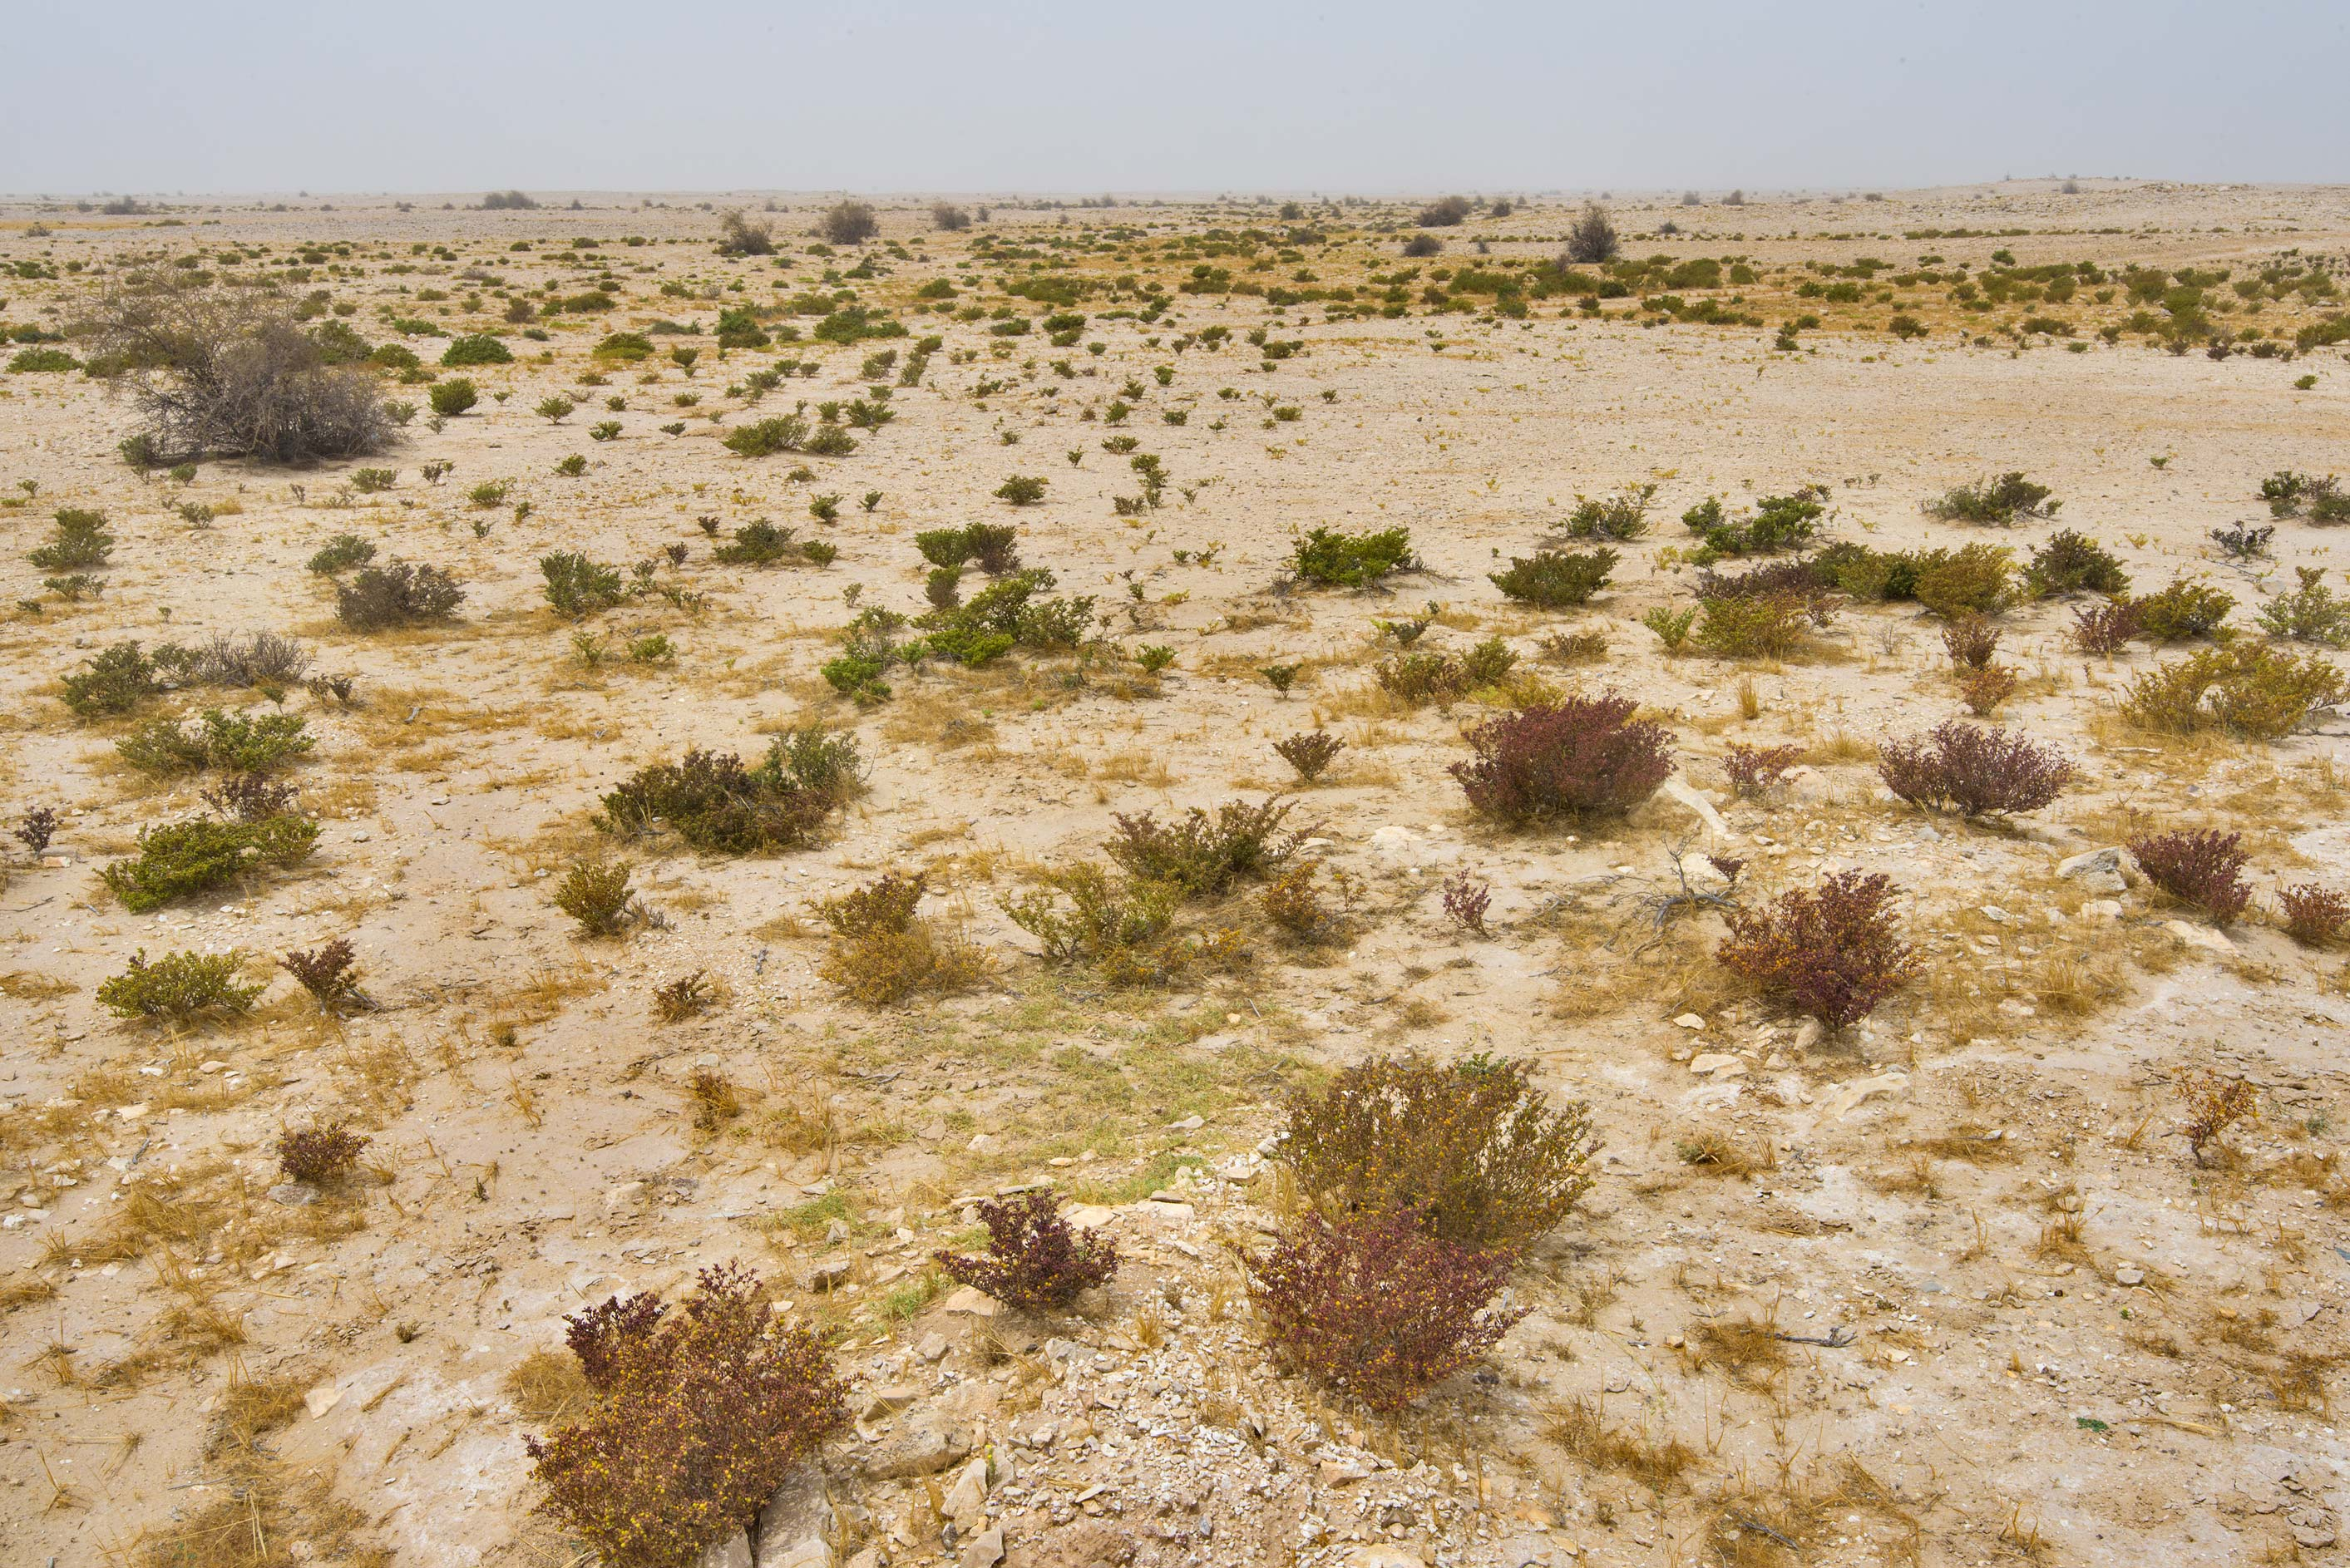 Salt tolerant plants in desert near a road to Al...western coast, Ash Shamal area. Qatar